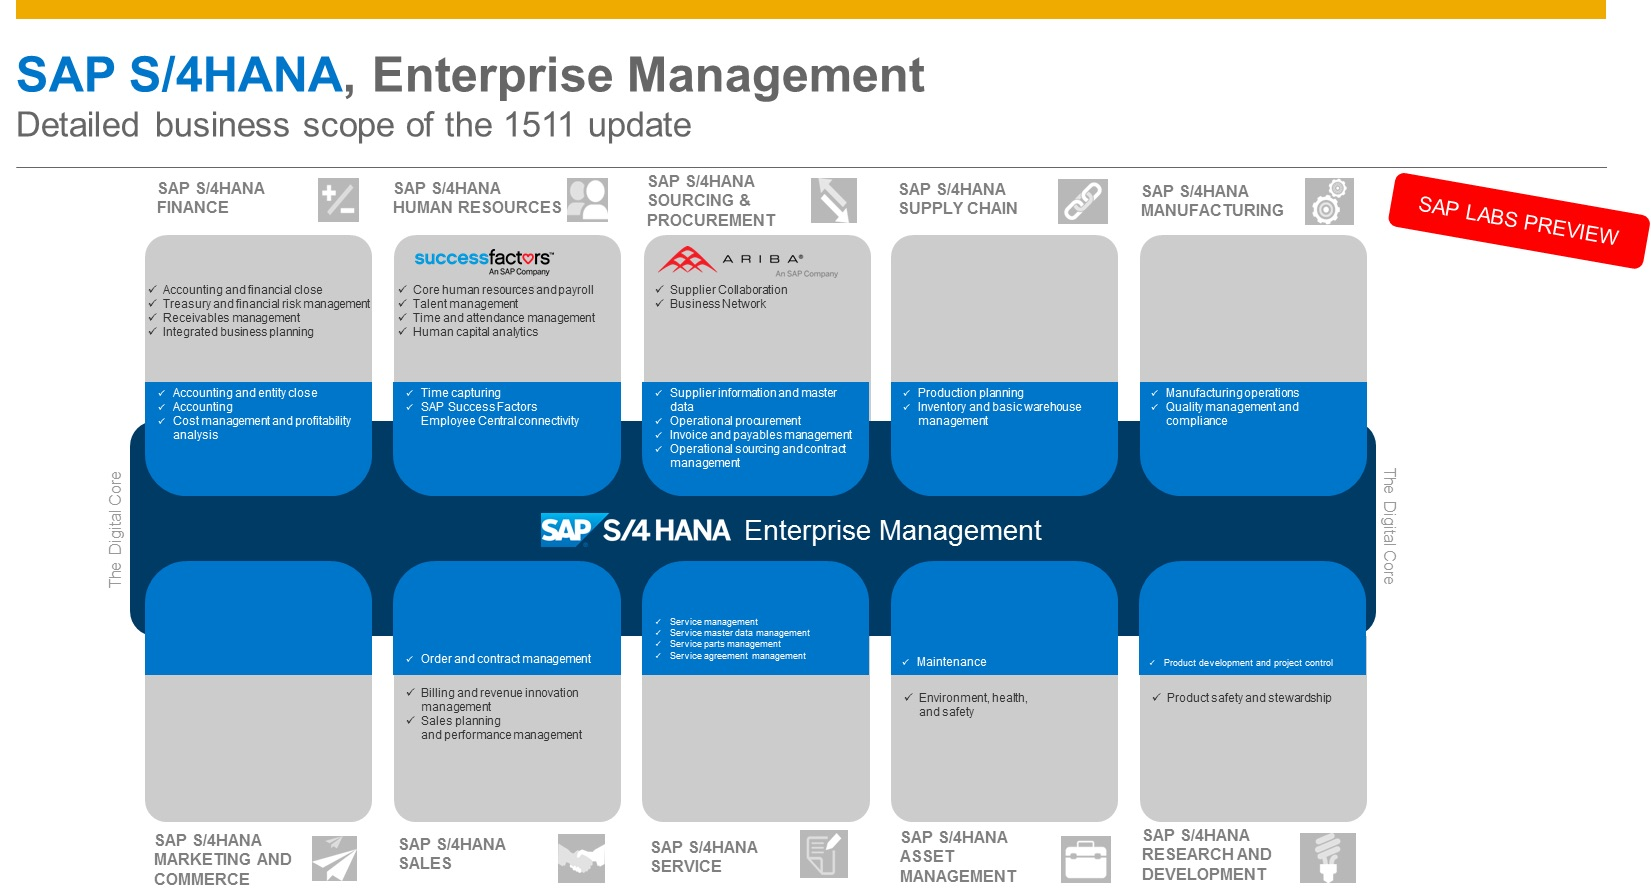 S4HANA_-_Enterprise_Management.jpg